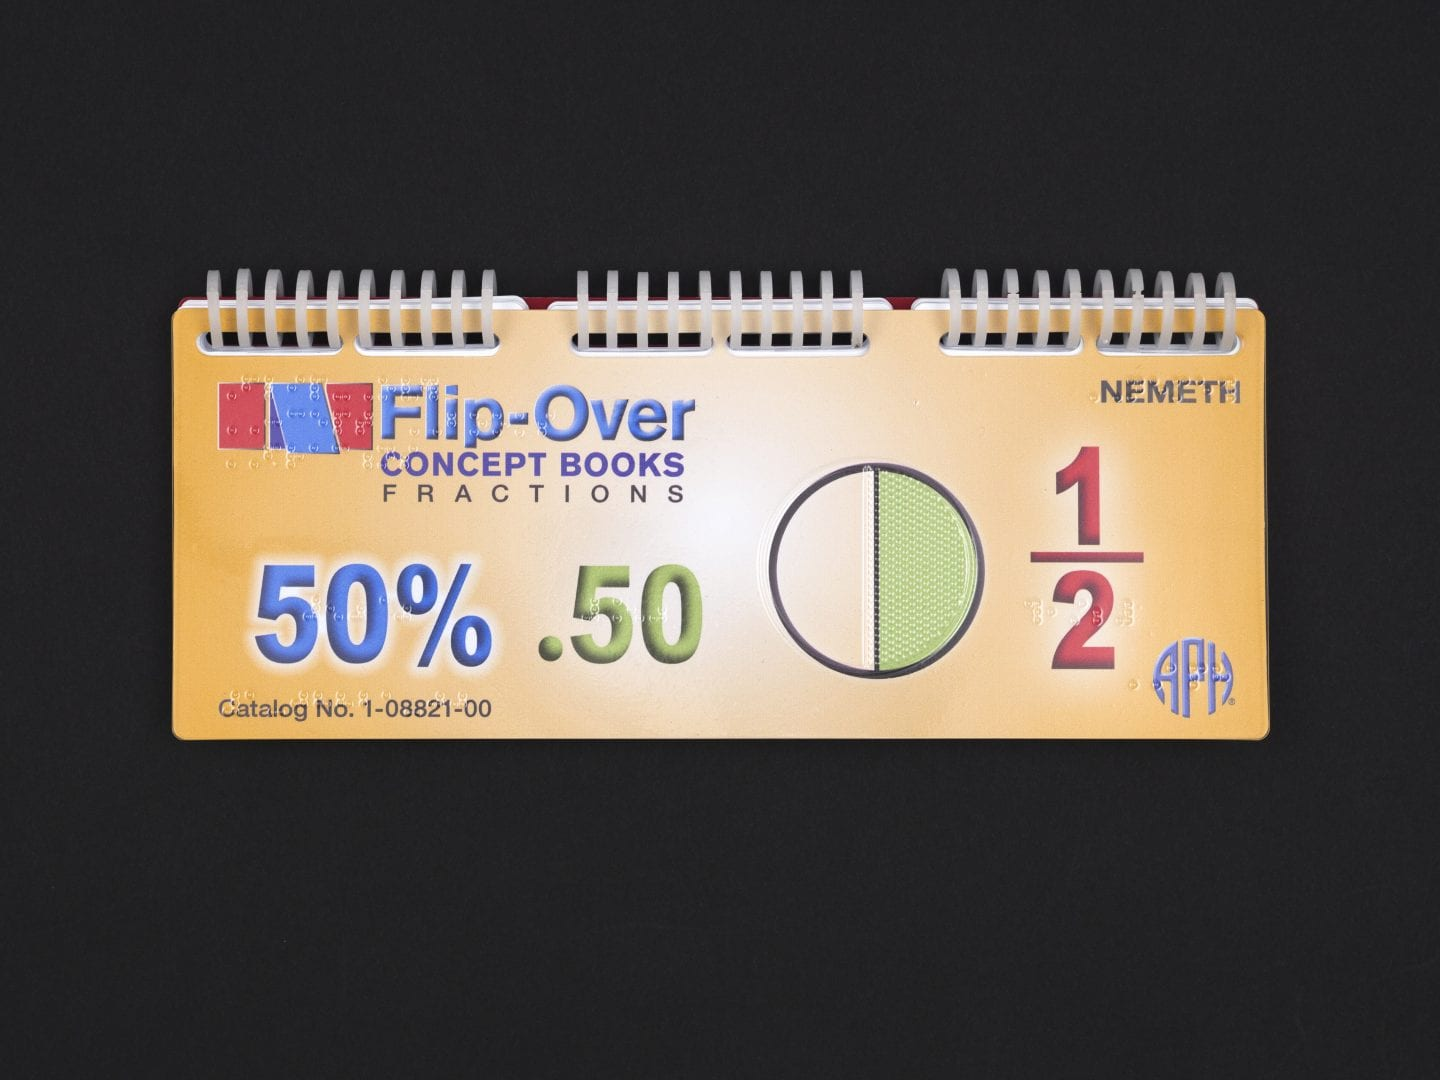 the Flip-Over Concept Book:Fractions spiral bound book on a black background